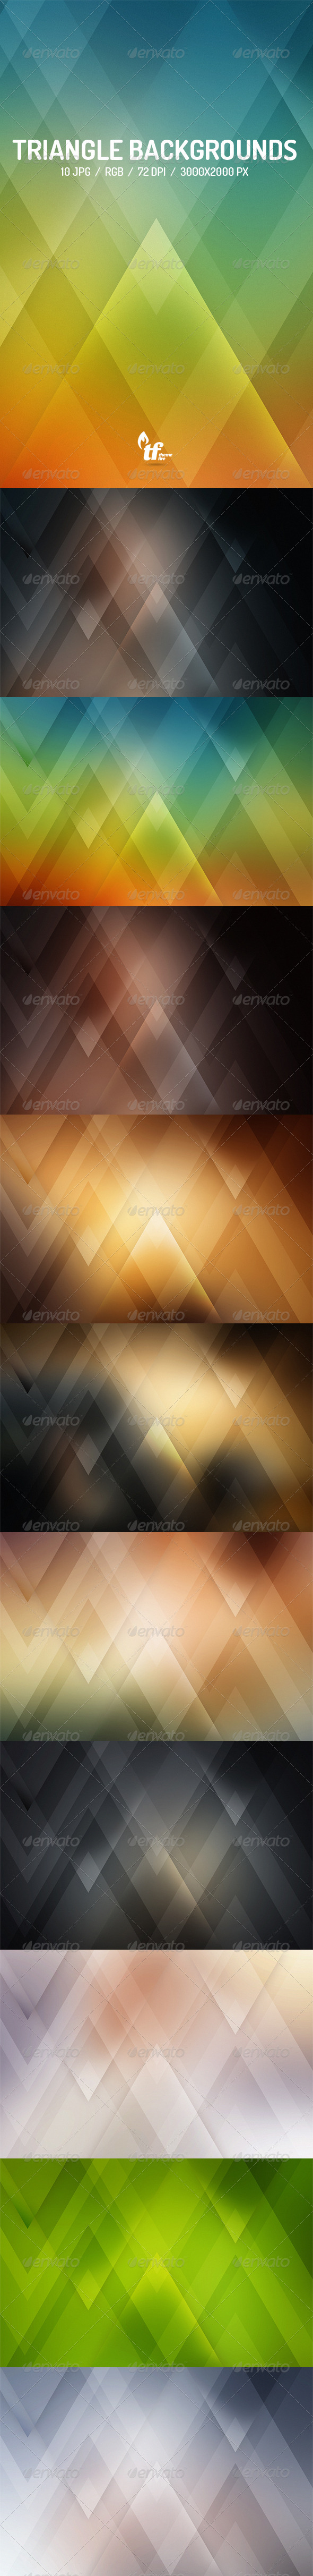 GraphicRiver Triangle Backgrounds 7620646